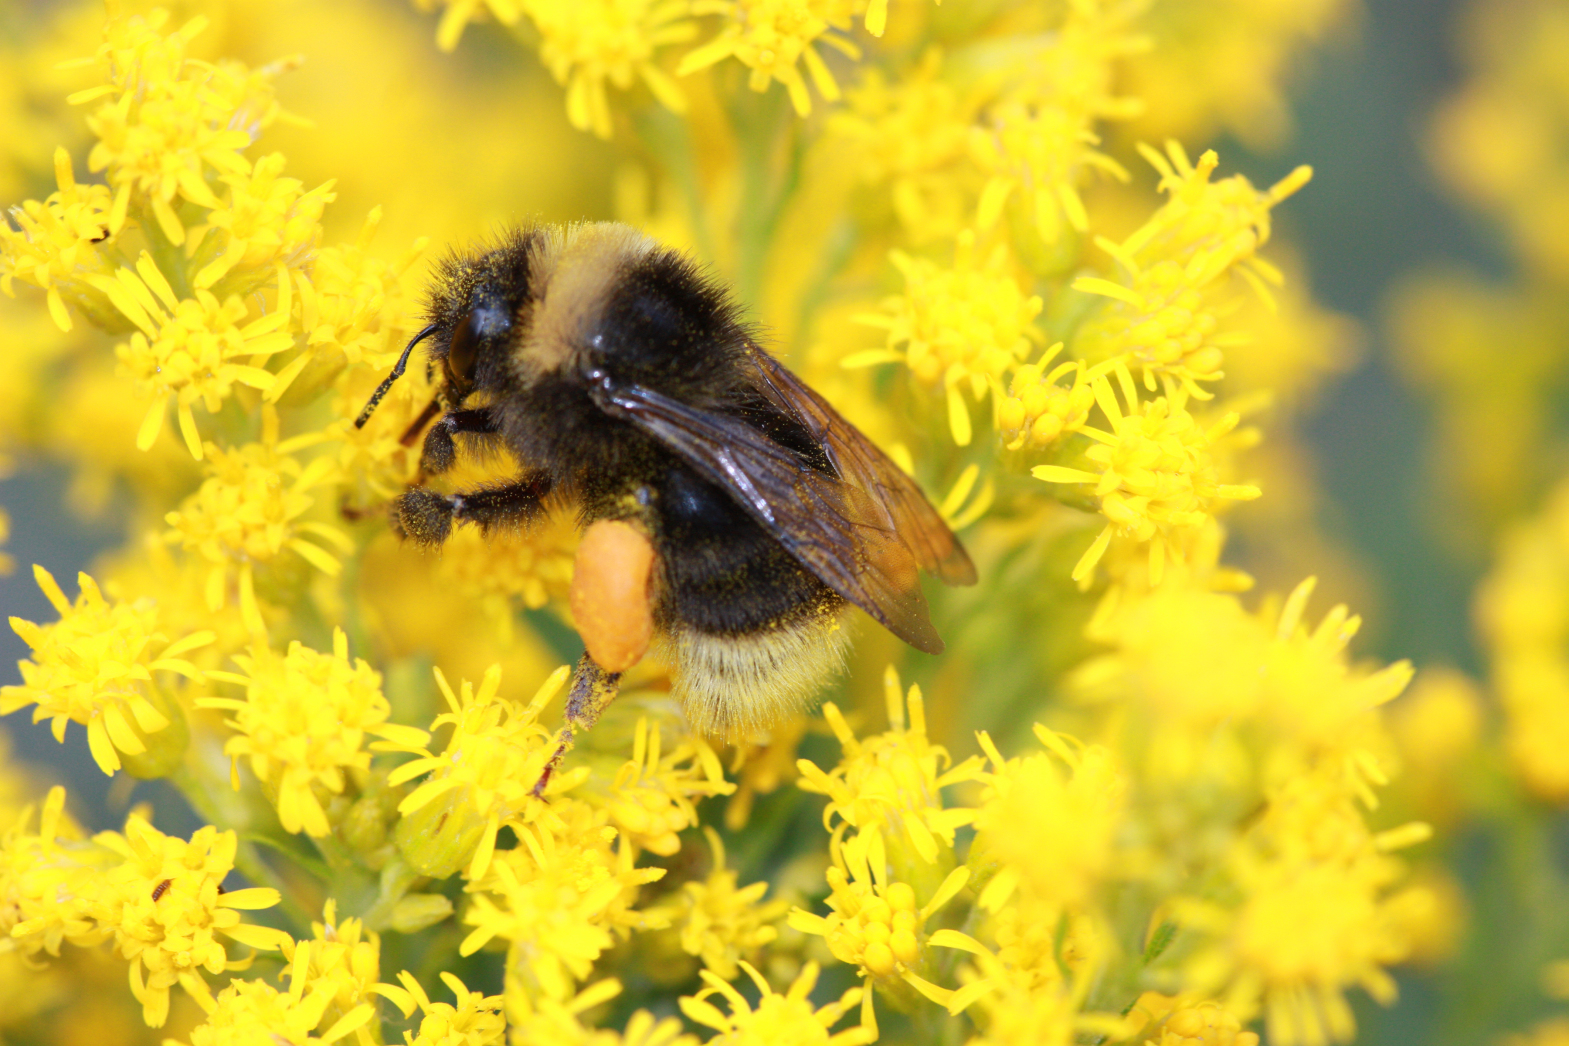 California Gardening: Try growing plants that bees will love